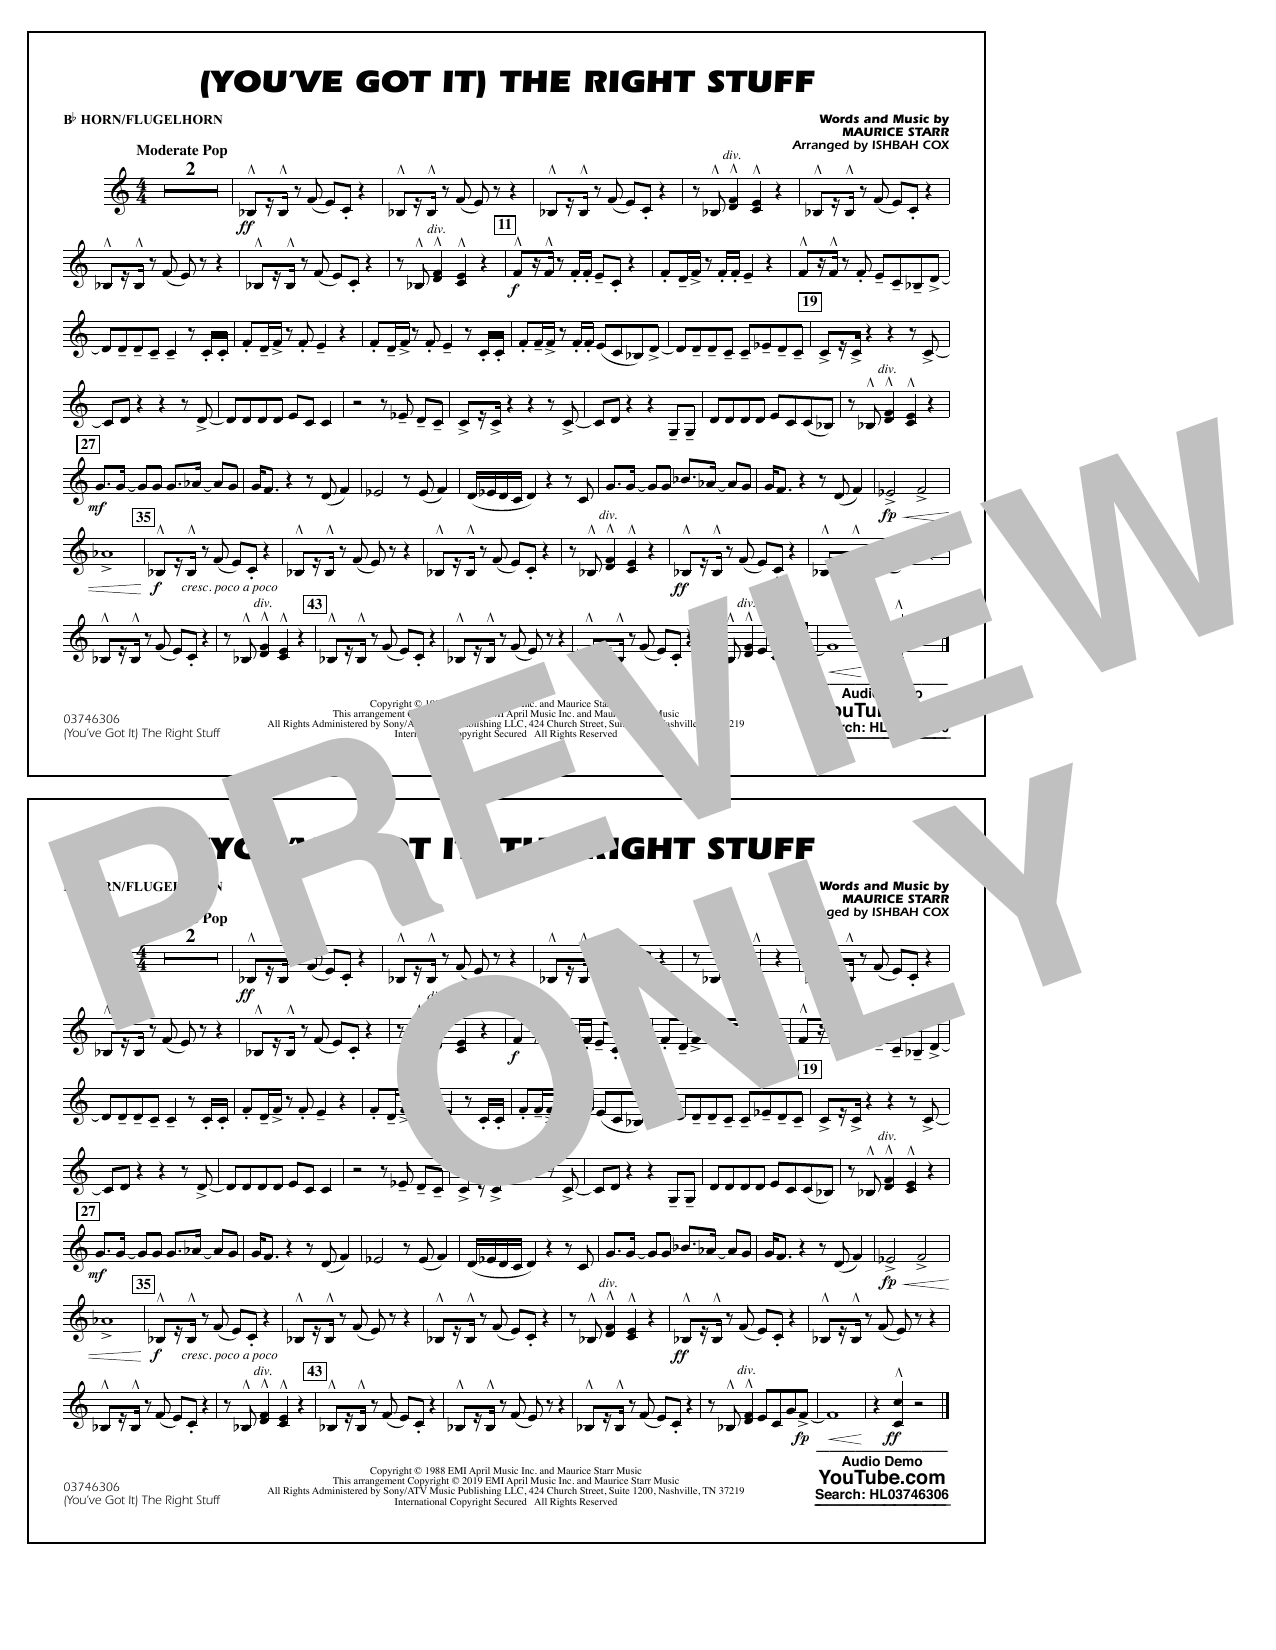 New Kids On The Block (You've Got It) The Right Stuff (arr. Ishbah Cox) - Bb Horn/Flugelhorn sheet music preview music notes and score for Marching Band including 1 page(s)